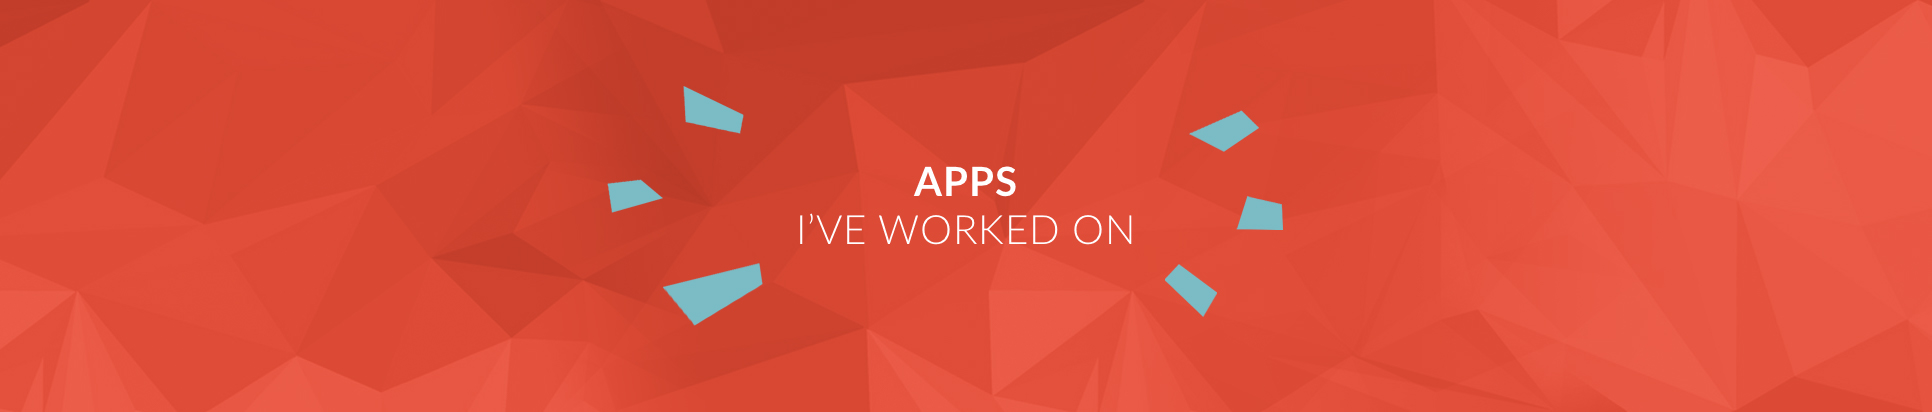 Apps Les Lanphere Has Worked On